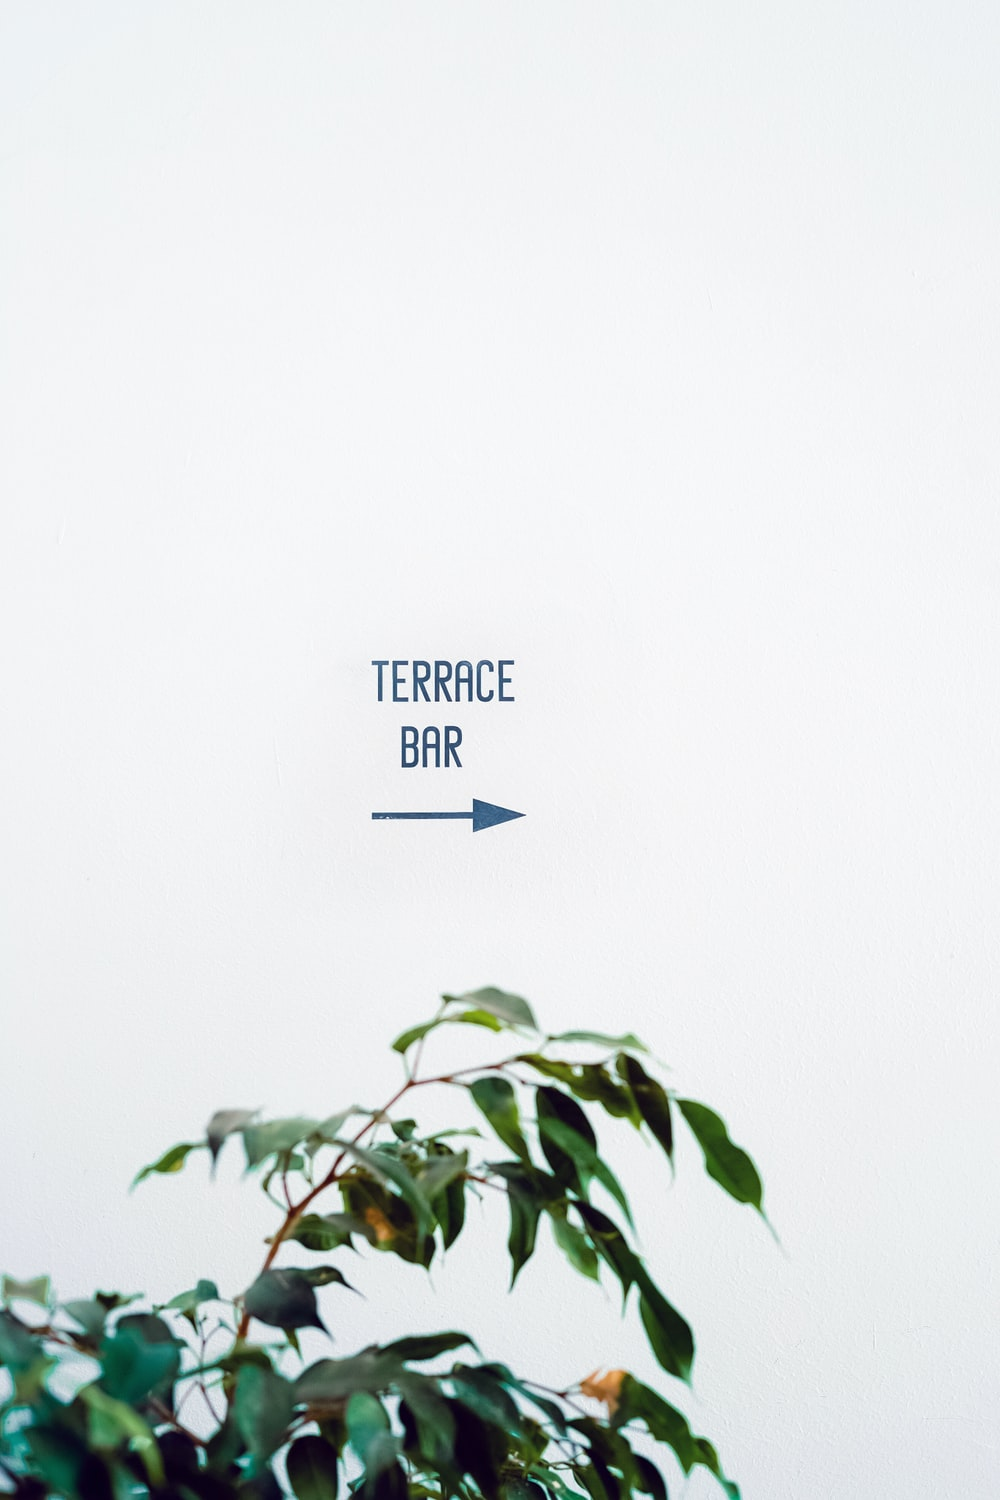 Terrace Bar text